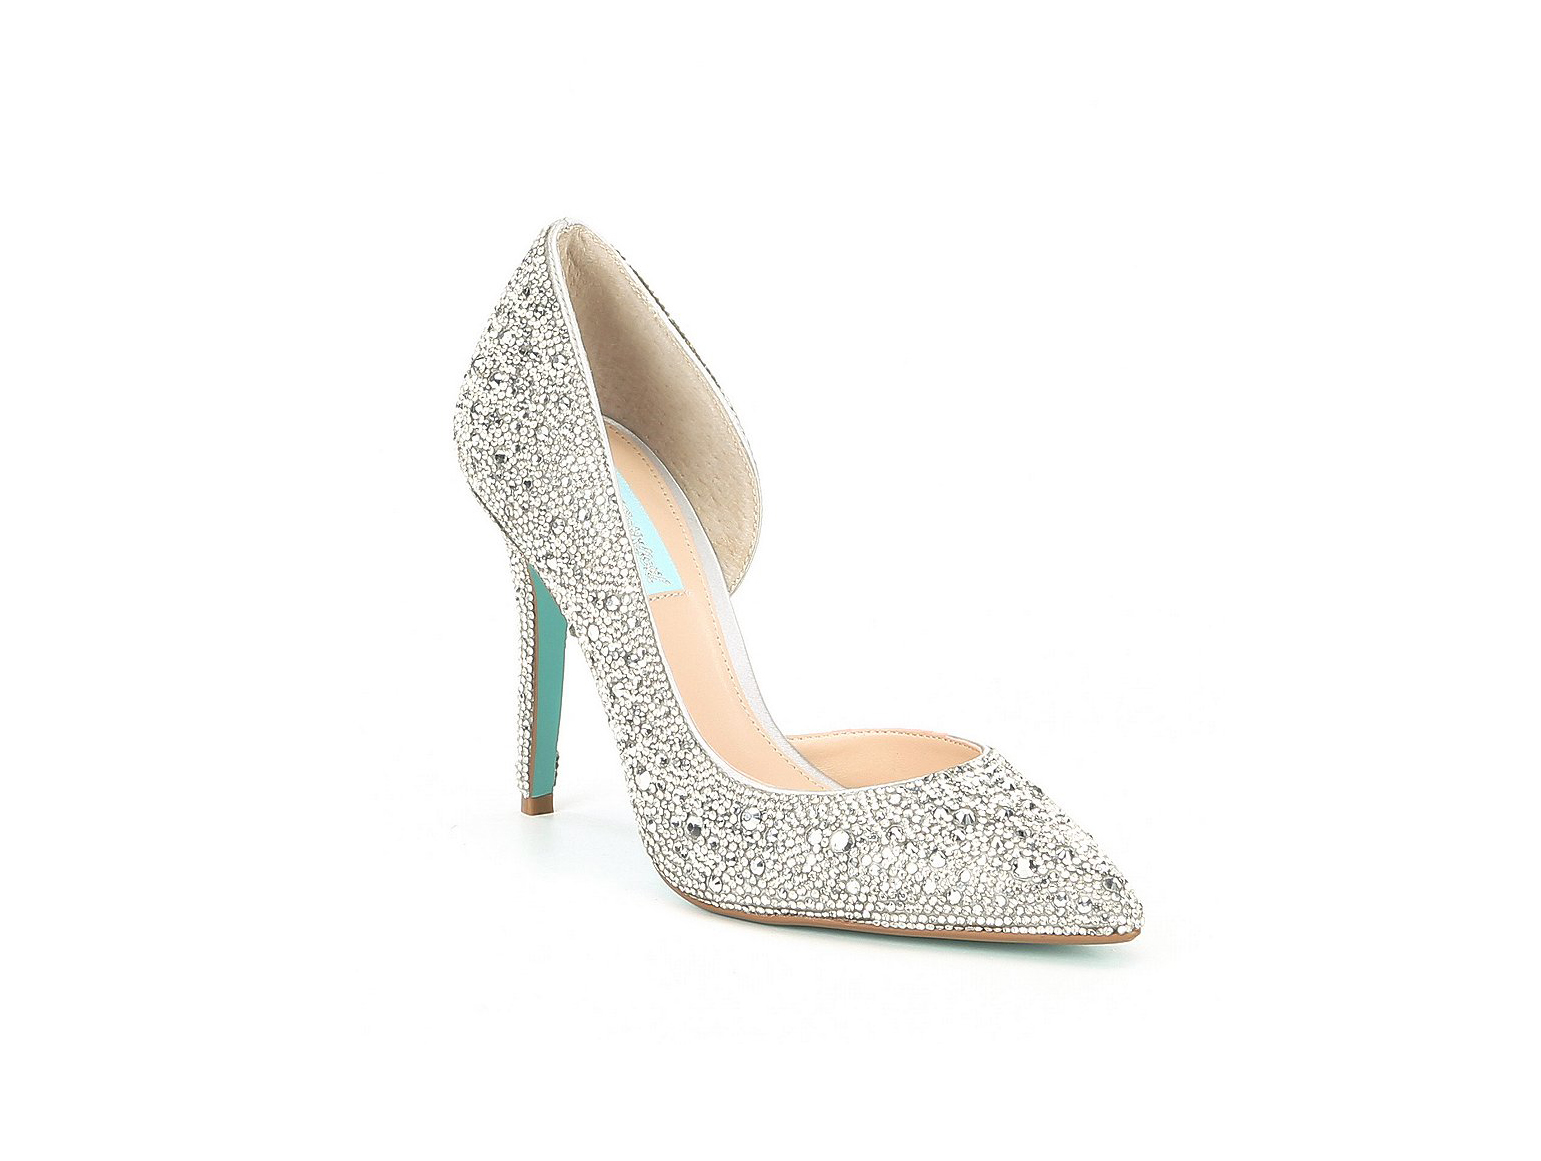 68f959e6765f3a Wedding Shoes That Will Make You Do a Double Take